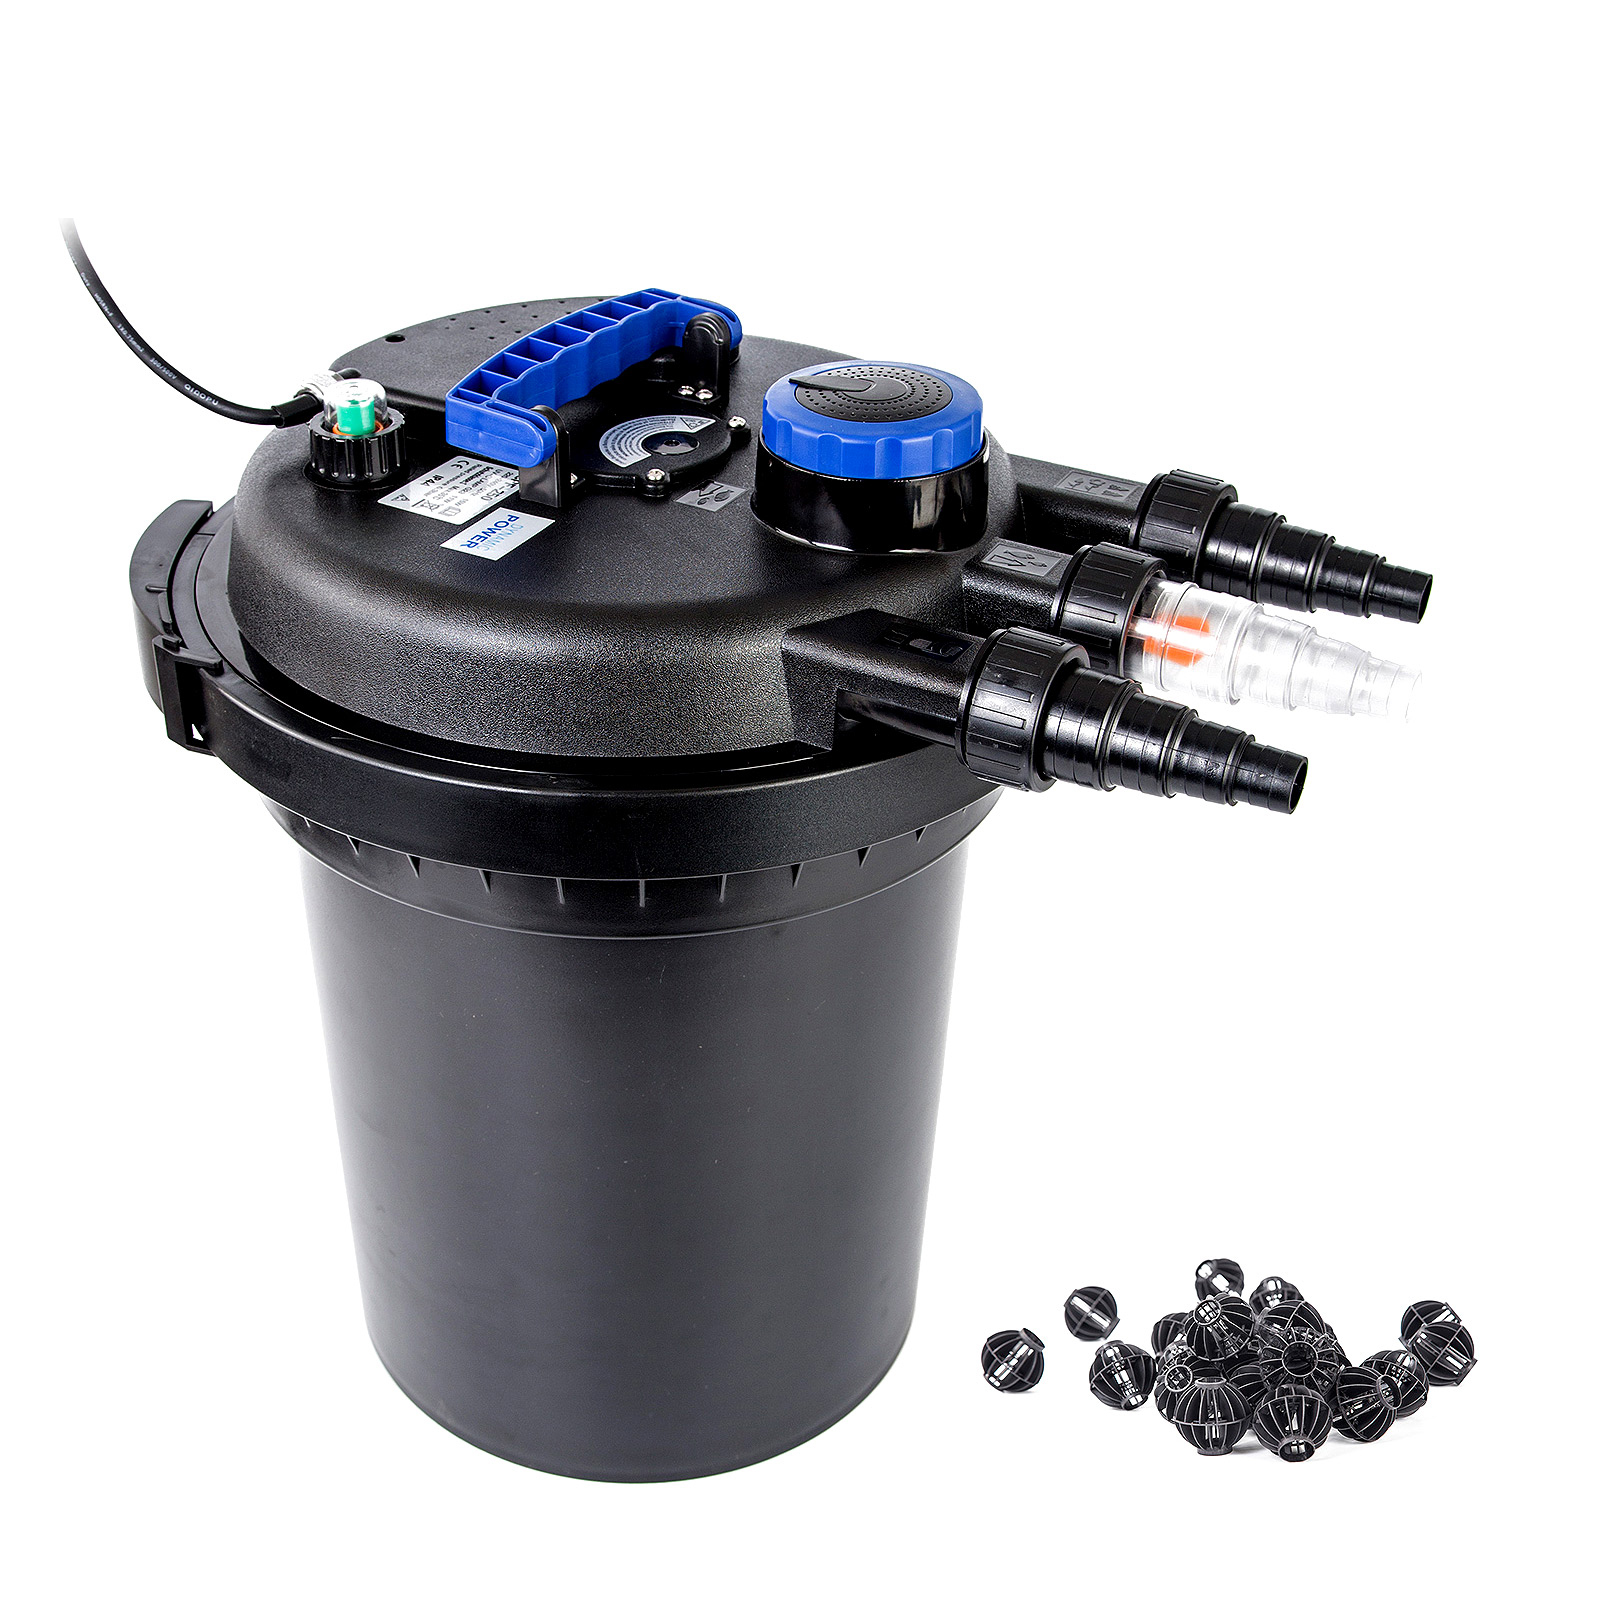 Aquarium external canister filter aqua fish tank pond uv for Fish tank filtration